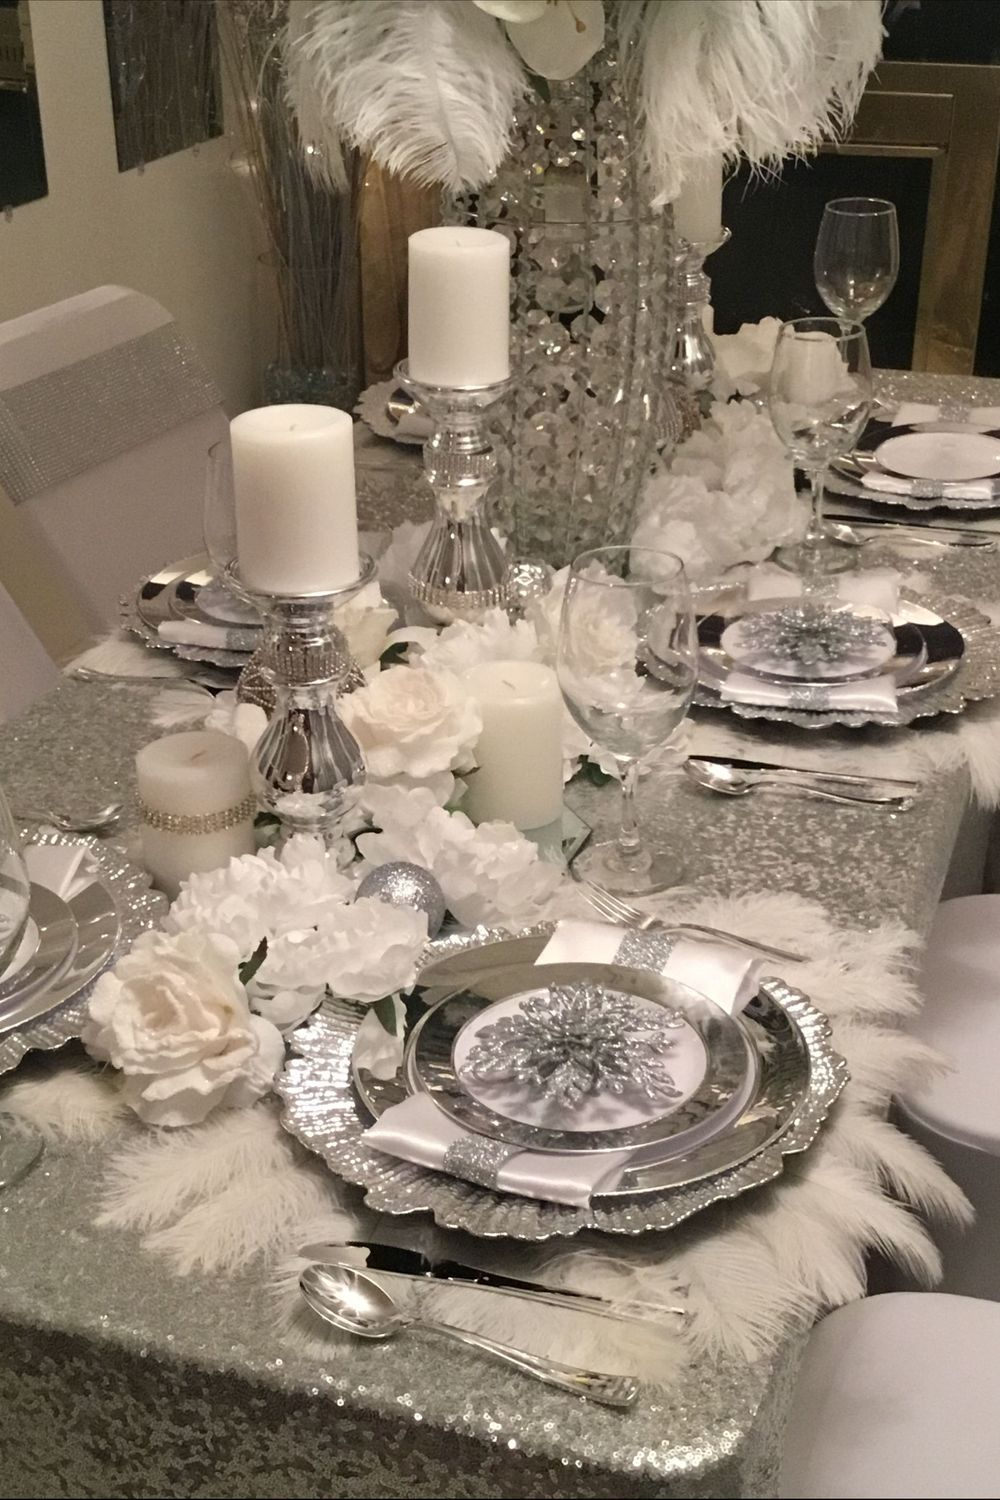 Table Dining Table Table Setting Centrepiece Tableware Dishware In 2020 Christmas Dining Room Table Dining Room Table Decor Dining Room Centerpiece